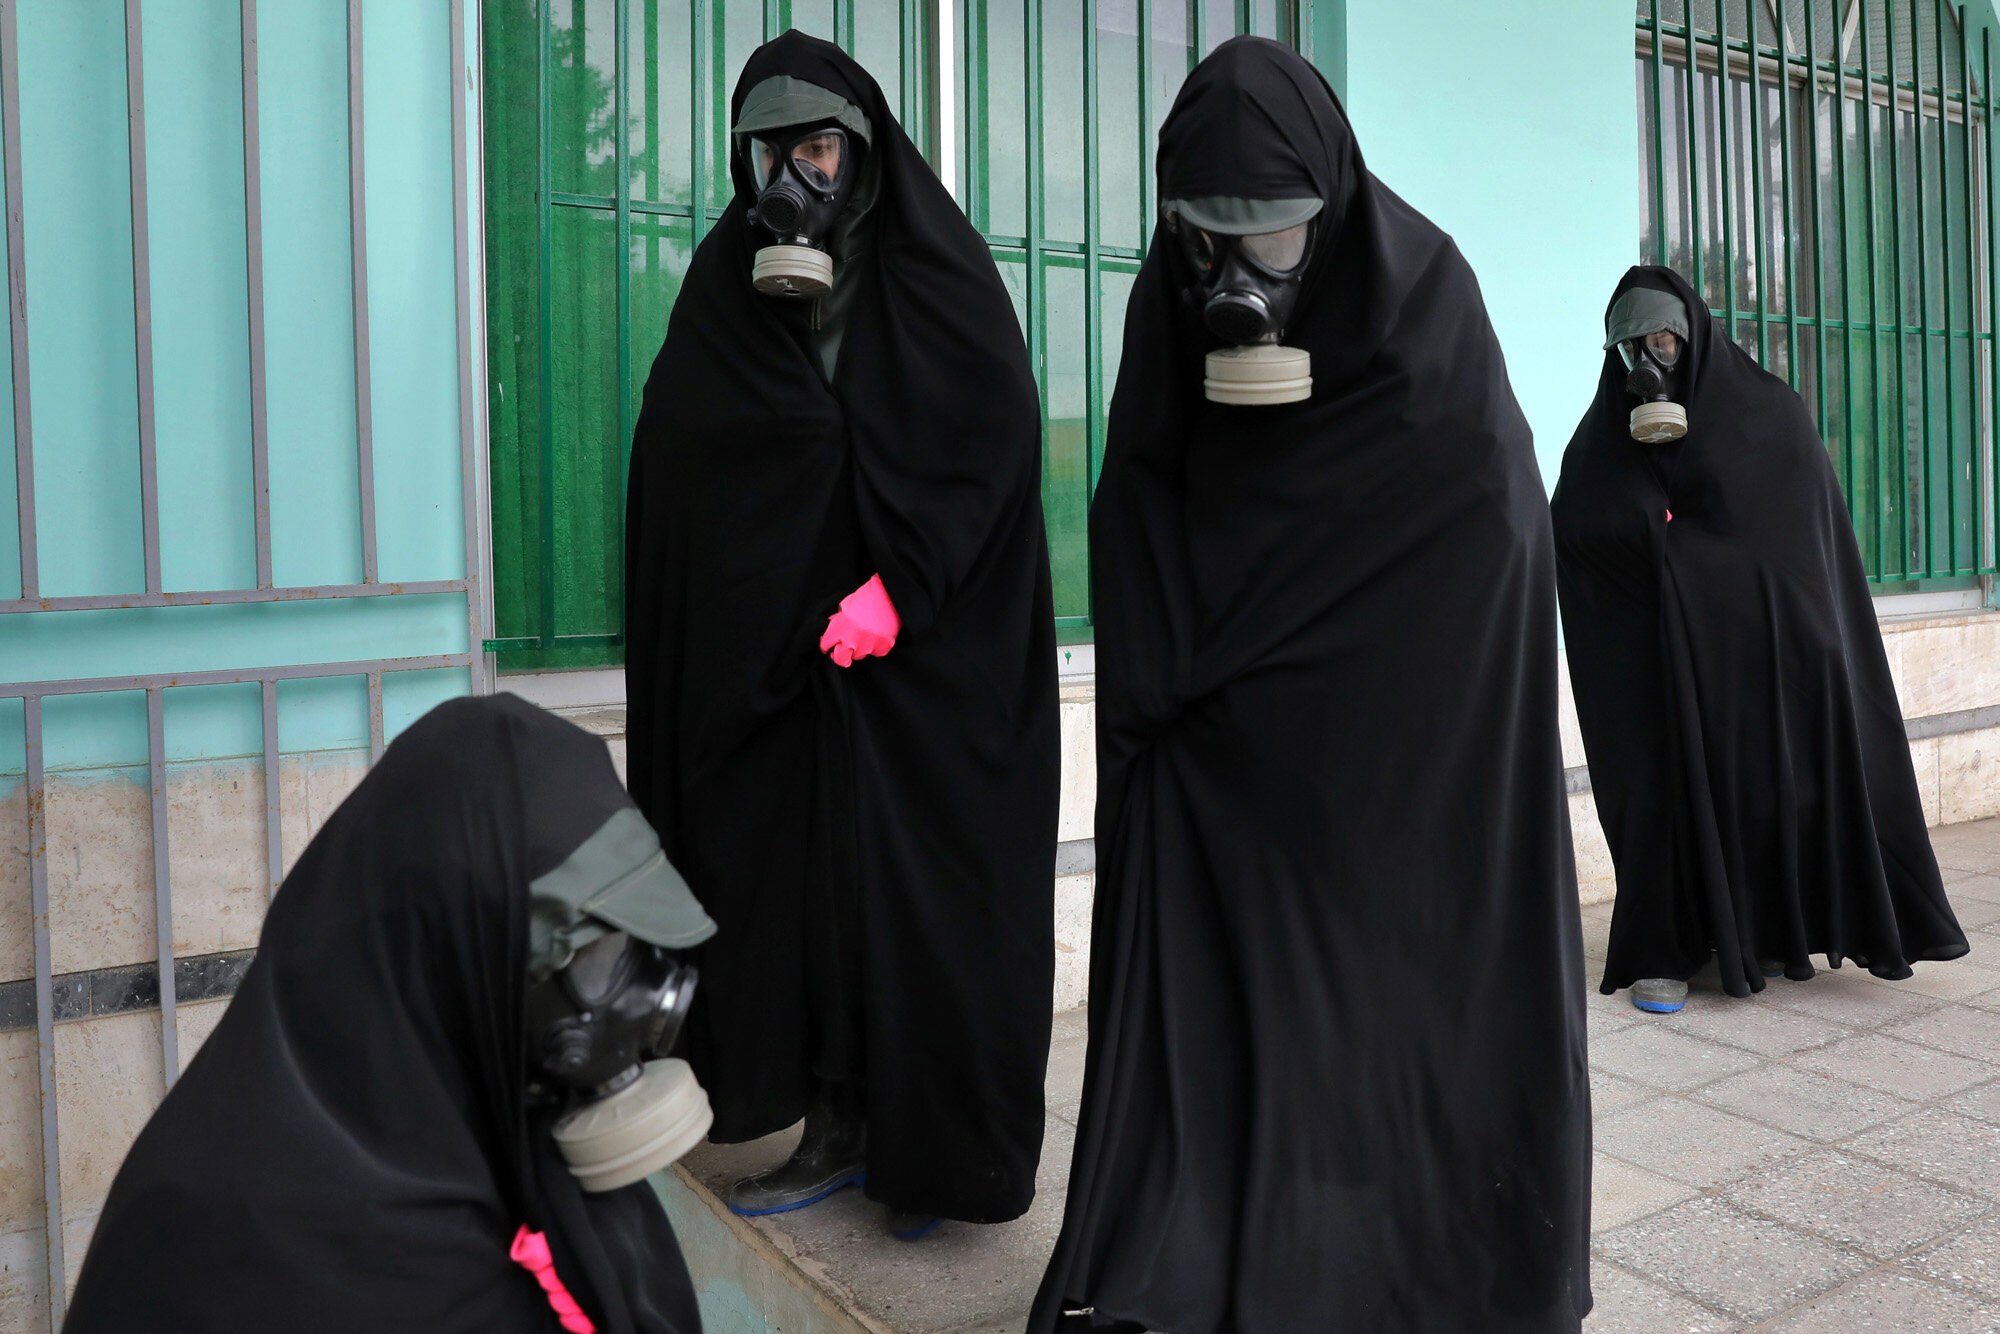 """Women clerics wearing protective clothing and """"chador,"""" a head-to-toe garment, arrive at a cemetery to prepare the body of a person who died from COVID-19 for a funeral, in Ghaemshahr, Iran, on April 30, 2020. (AP Photo/Ebrahim Noroozi)"""